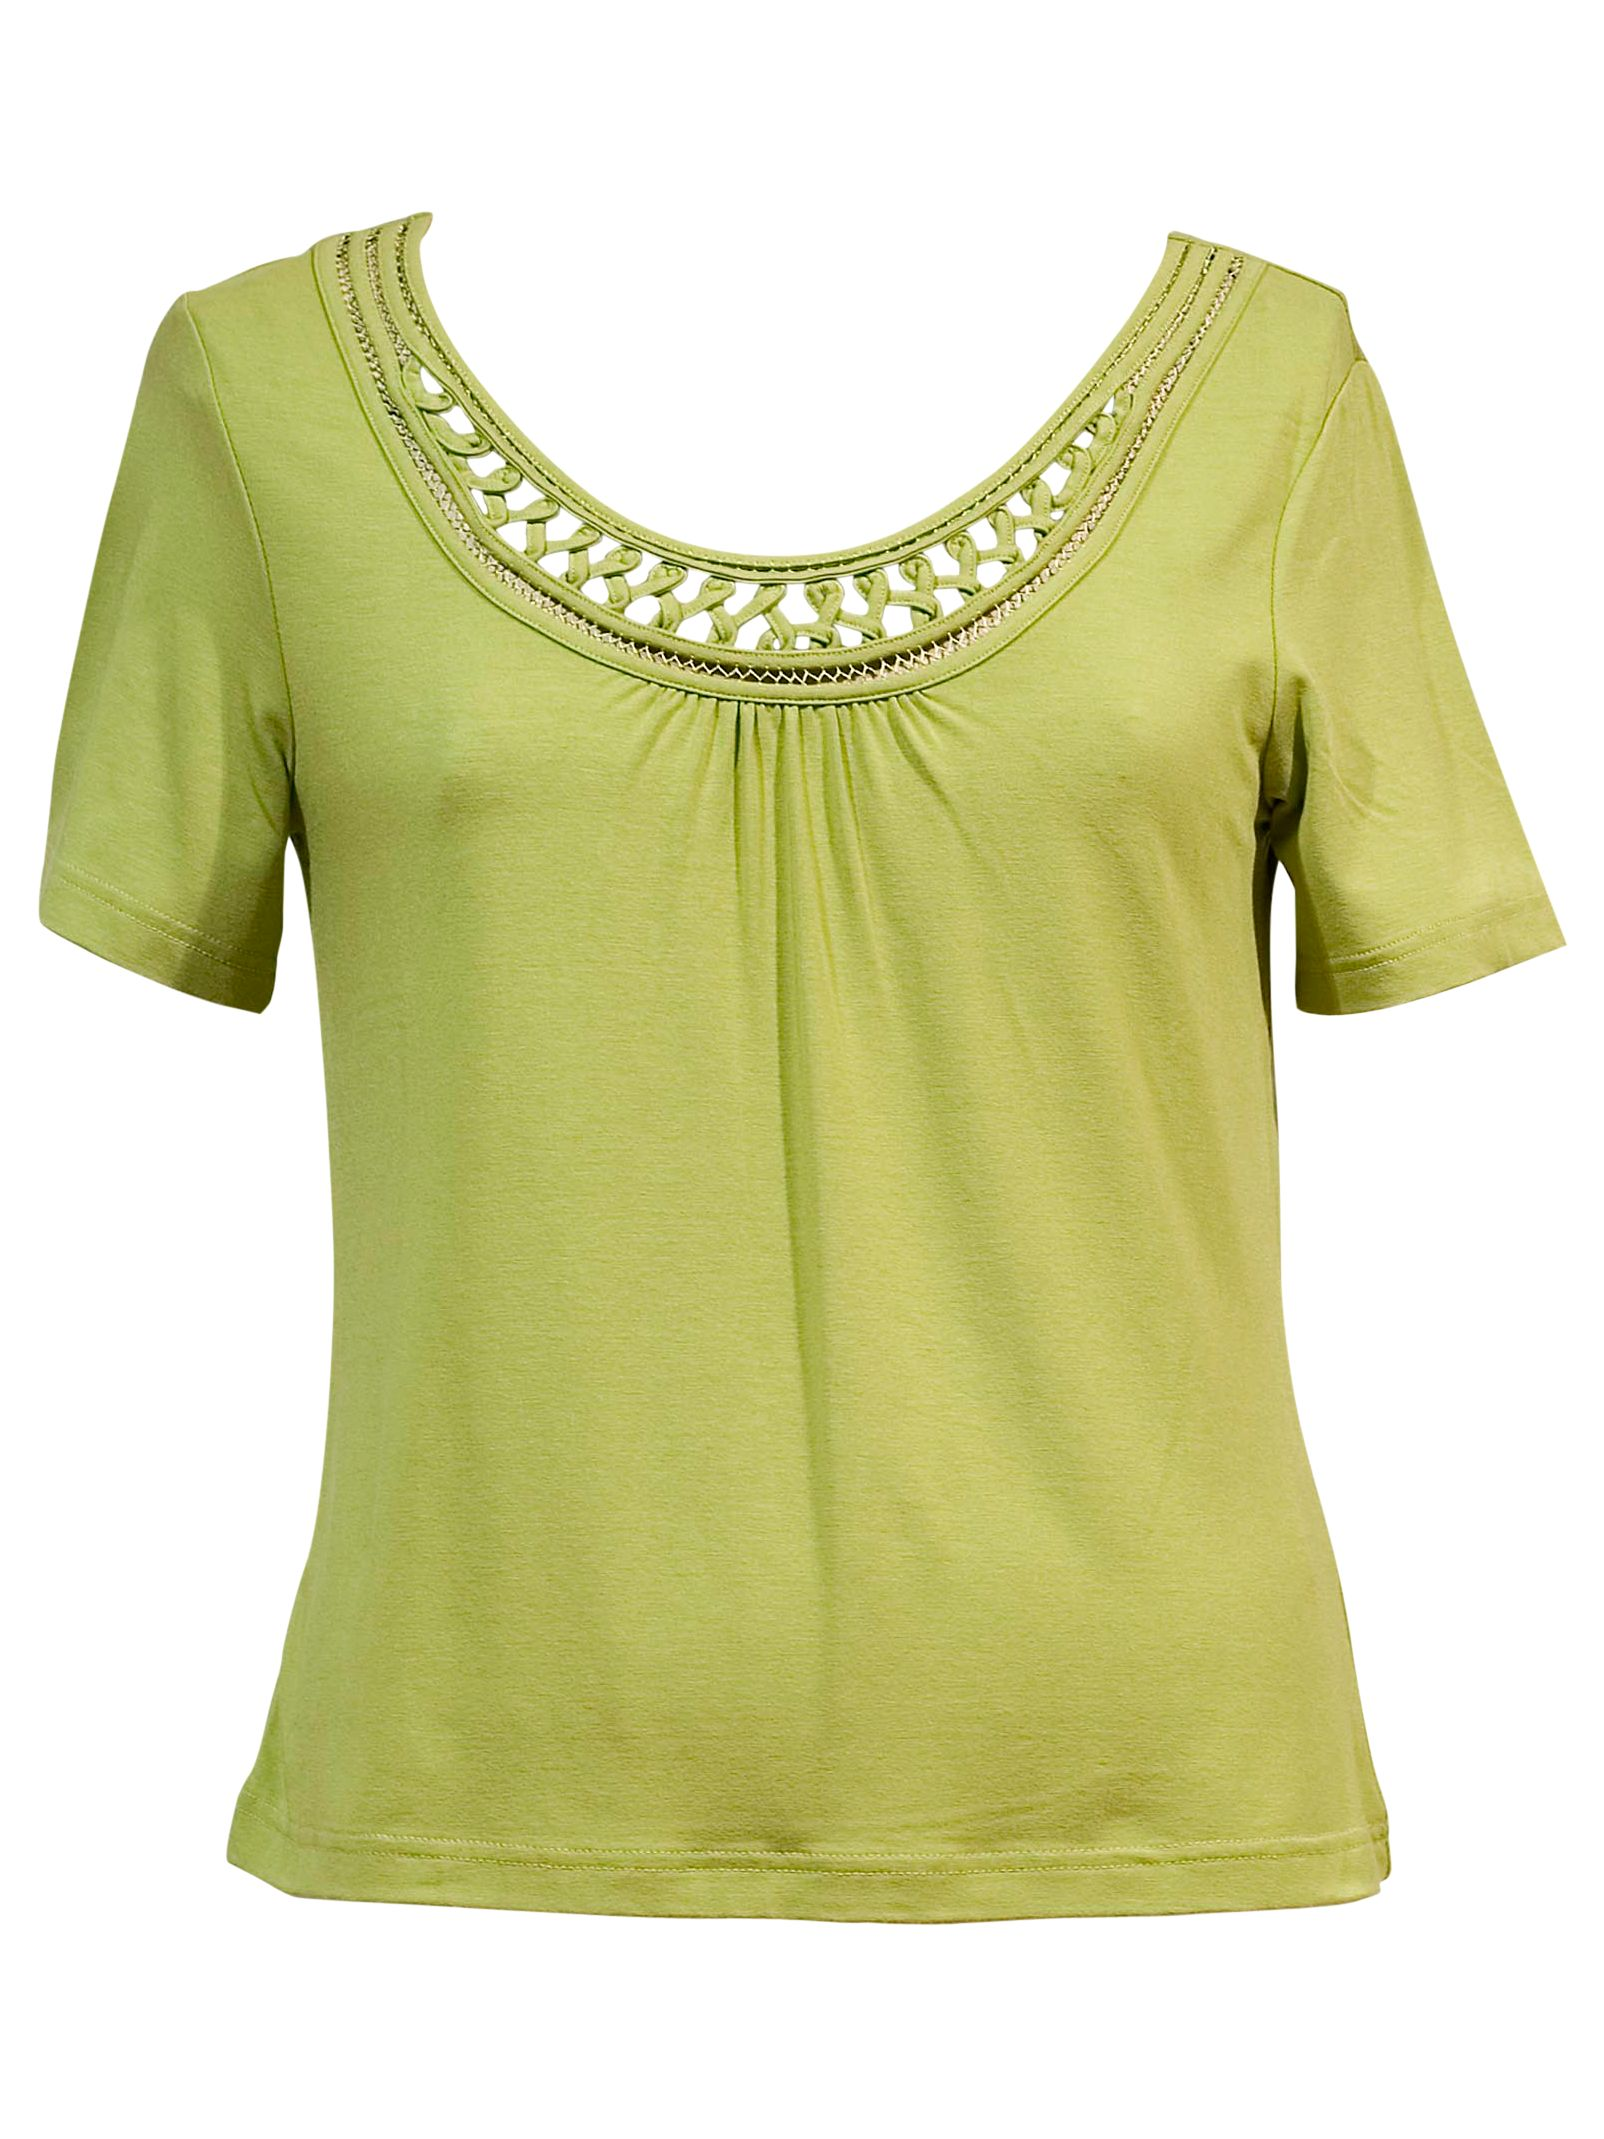 Chesca Macrame Neck Trim Short Sleeve T-Shirt,